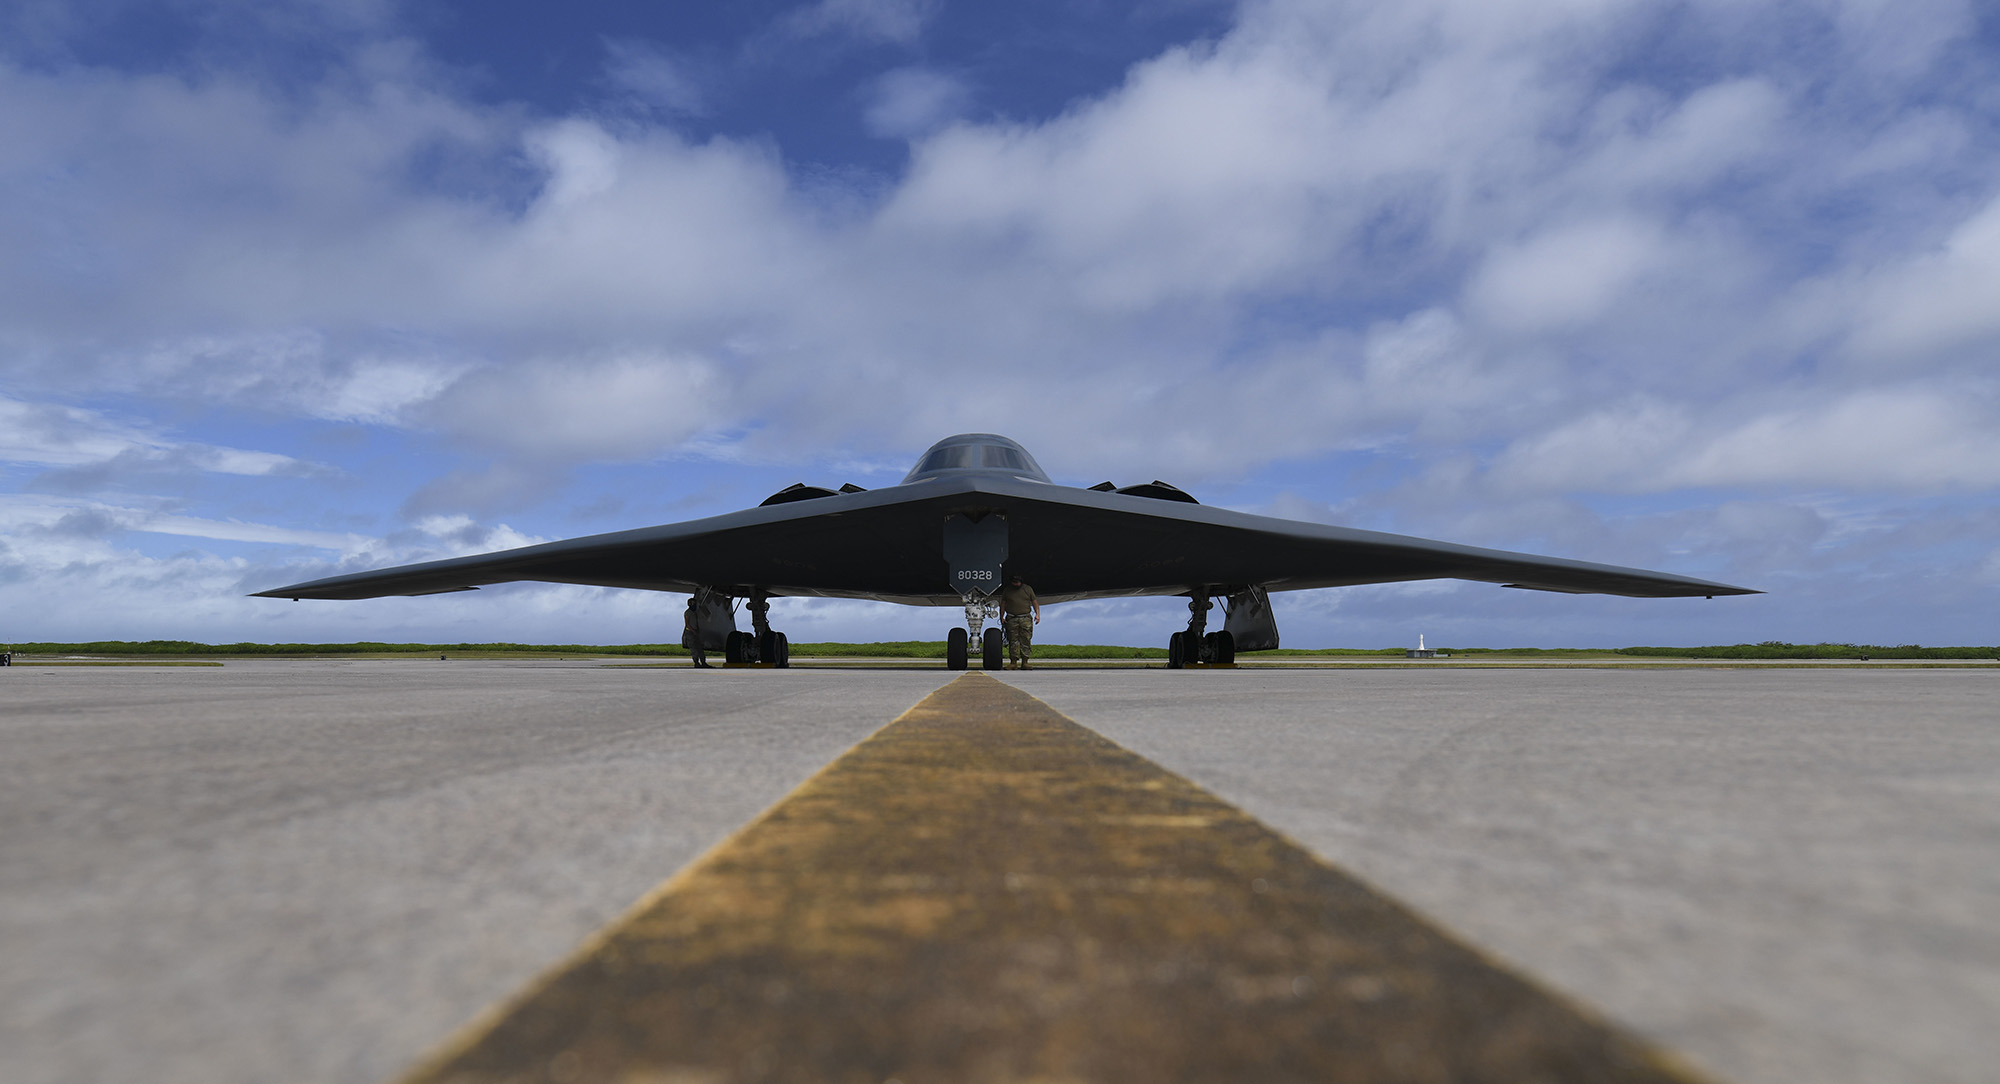 Senior Airman Robert Witkowski and Staff Sgt. Mark Farrar, 393rd Expeditionary Bomb Squadron crew chiefs, deployed from Whiteman Air Force Base, Mo., prepare a B-2 Spirit for takeoff at Naval Support Facility Diego Garcia in support of a Bomber Task Force mission, Aug. 17, 2020. (Tech. Sgt. Heather Salaza/Air Force)